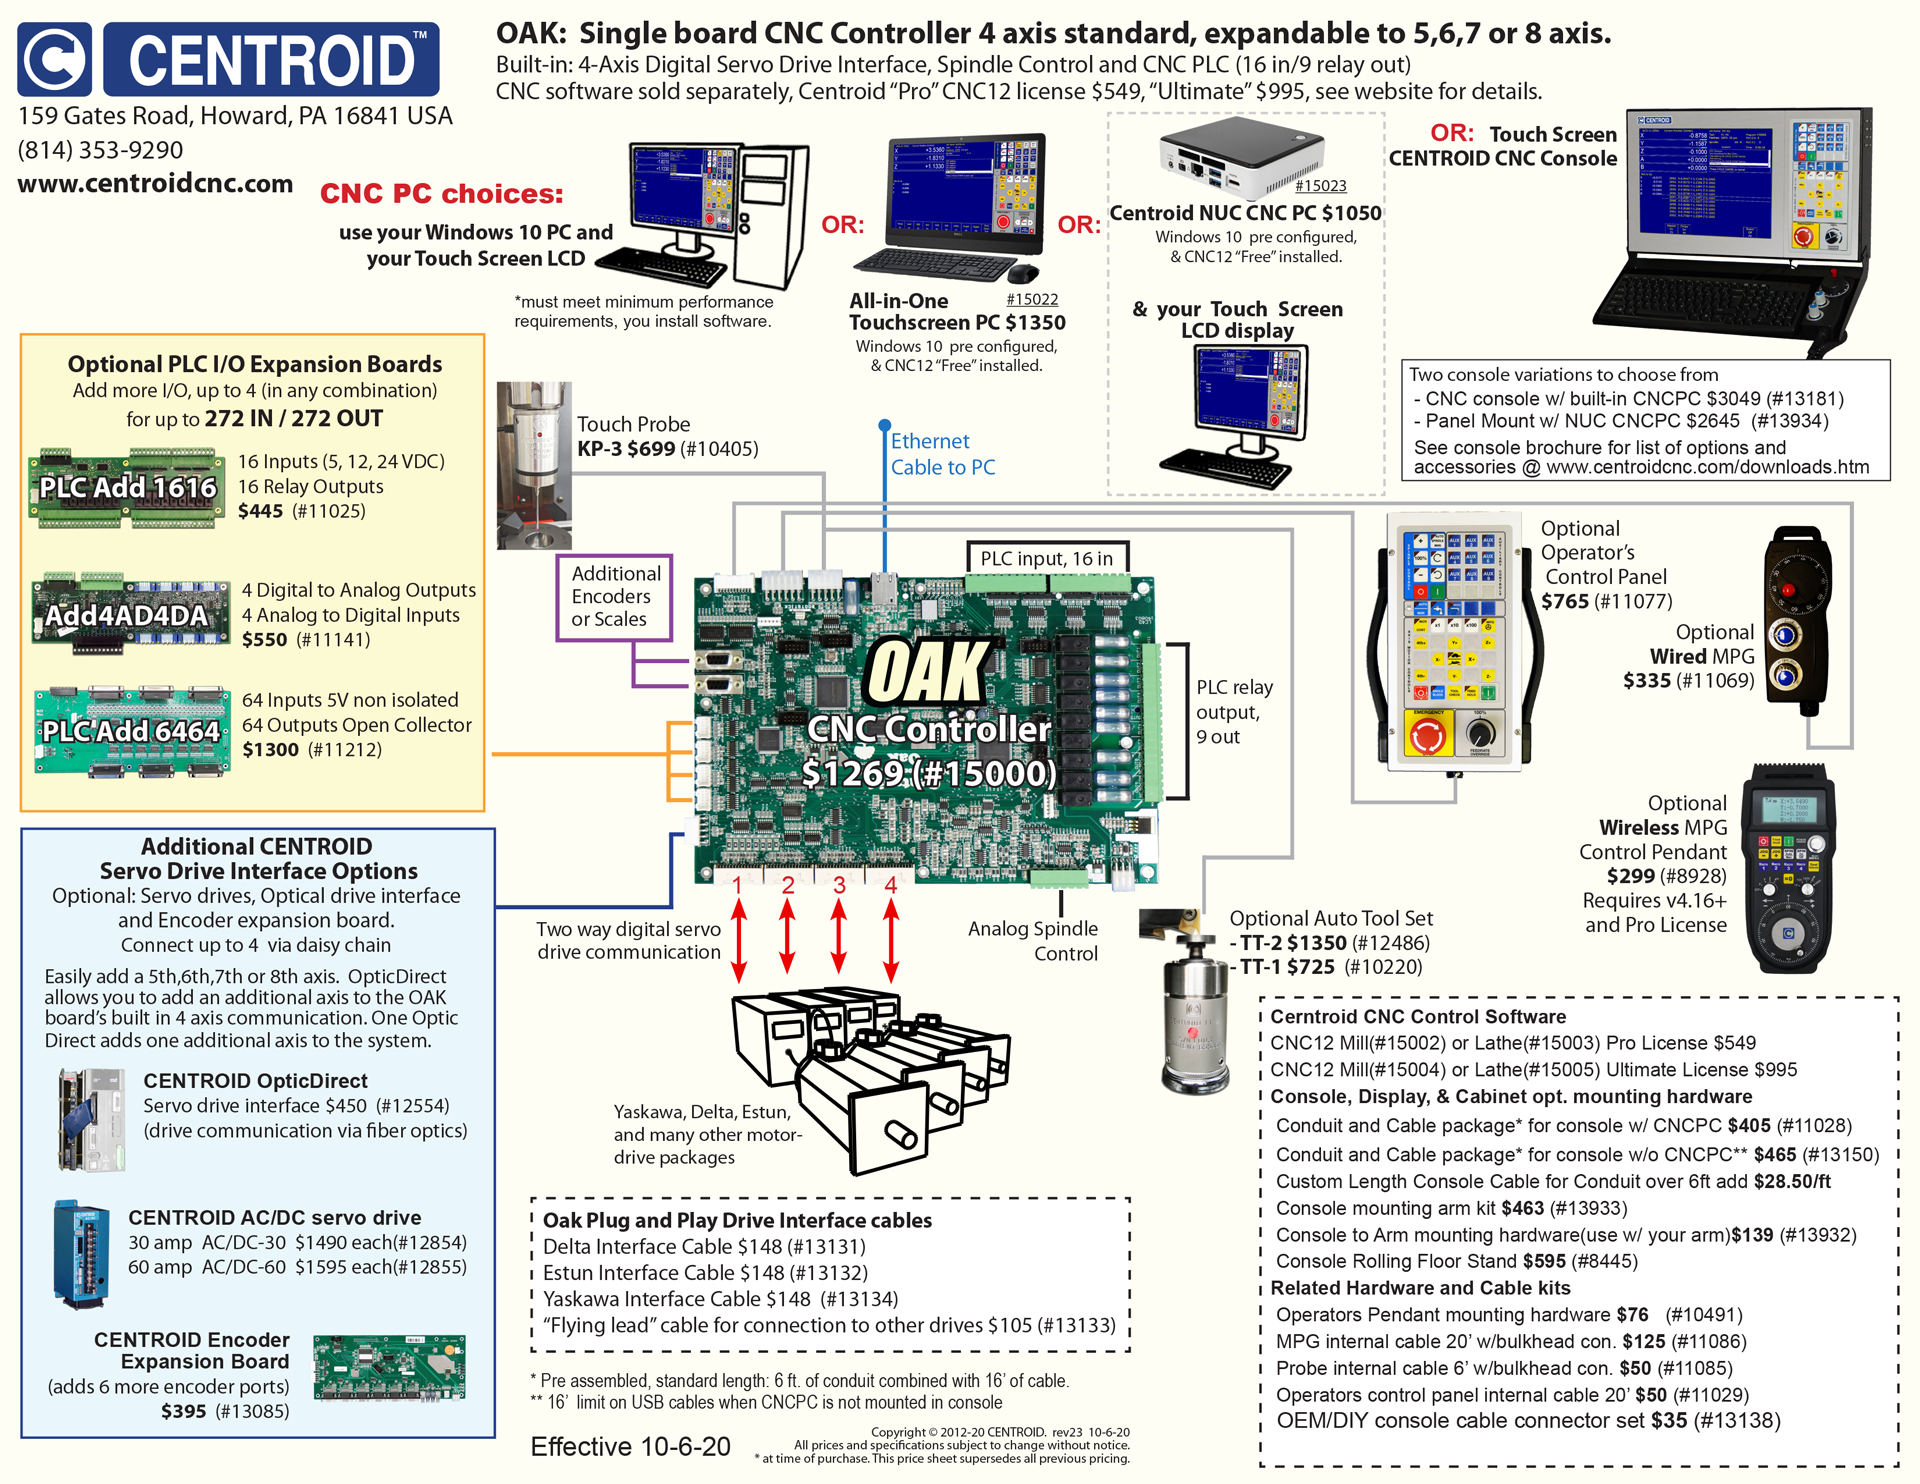 Centroid Cnc Controller Technology For Ac And Dc Servo Motor Based Click Image To See Larger View On